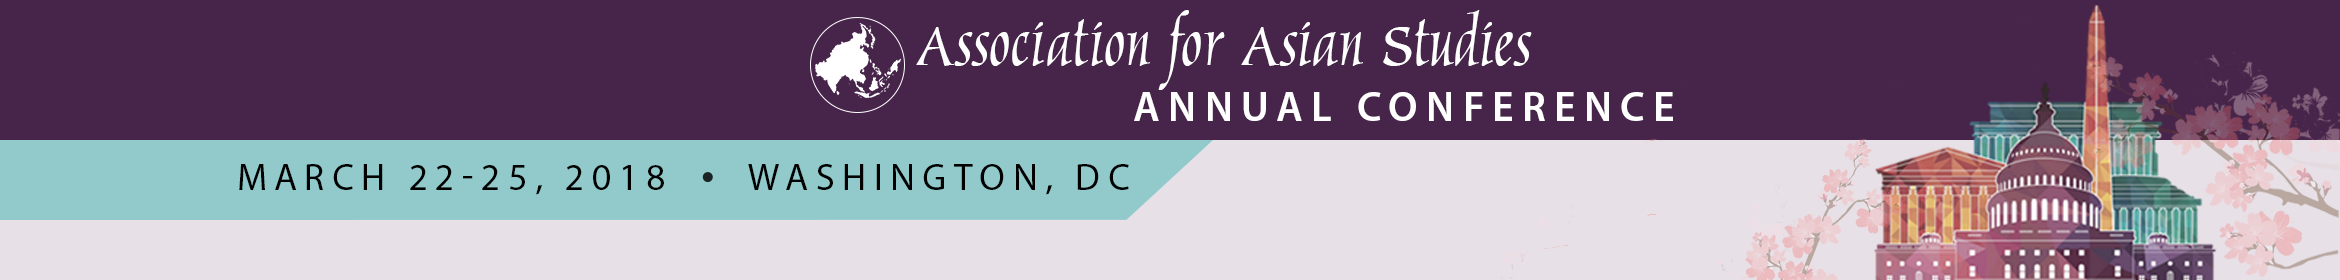 AAS 2018 Annual Conference Main banner